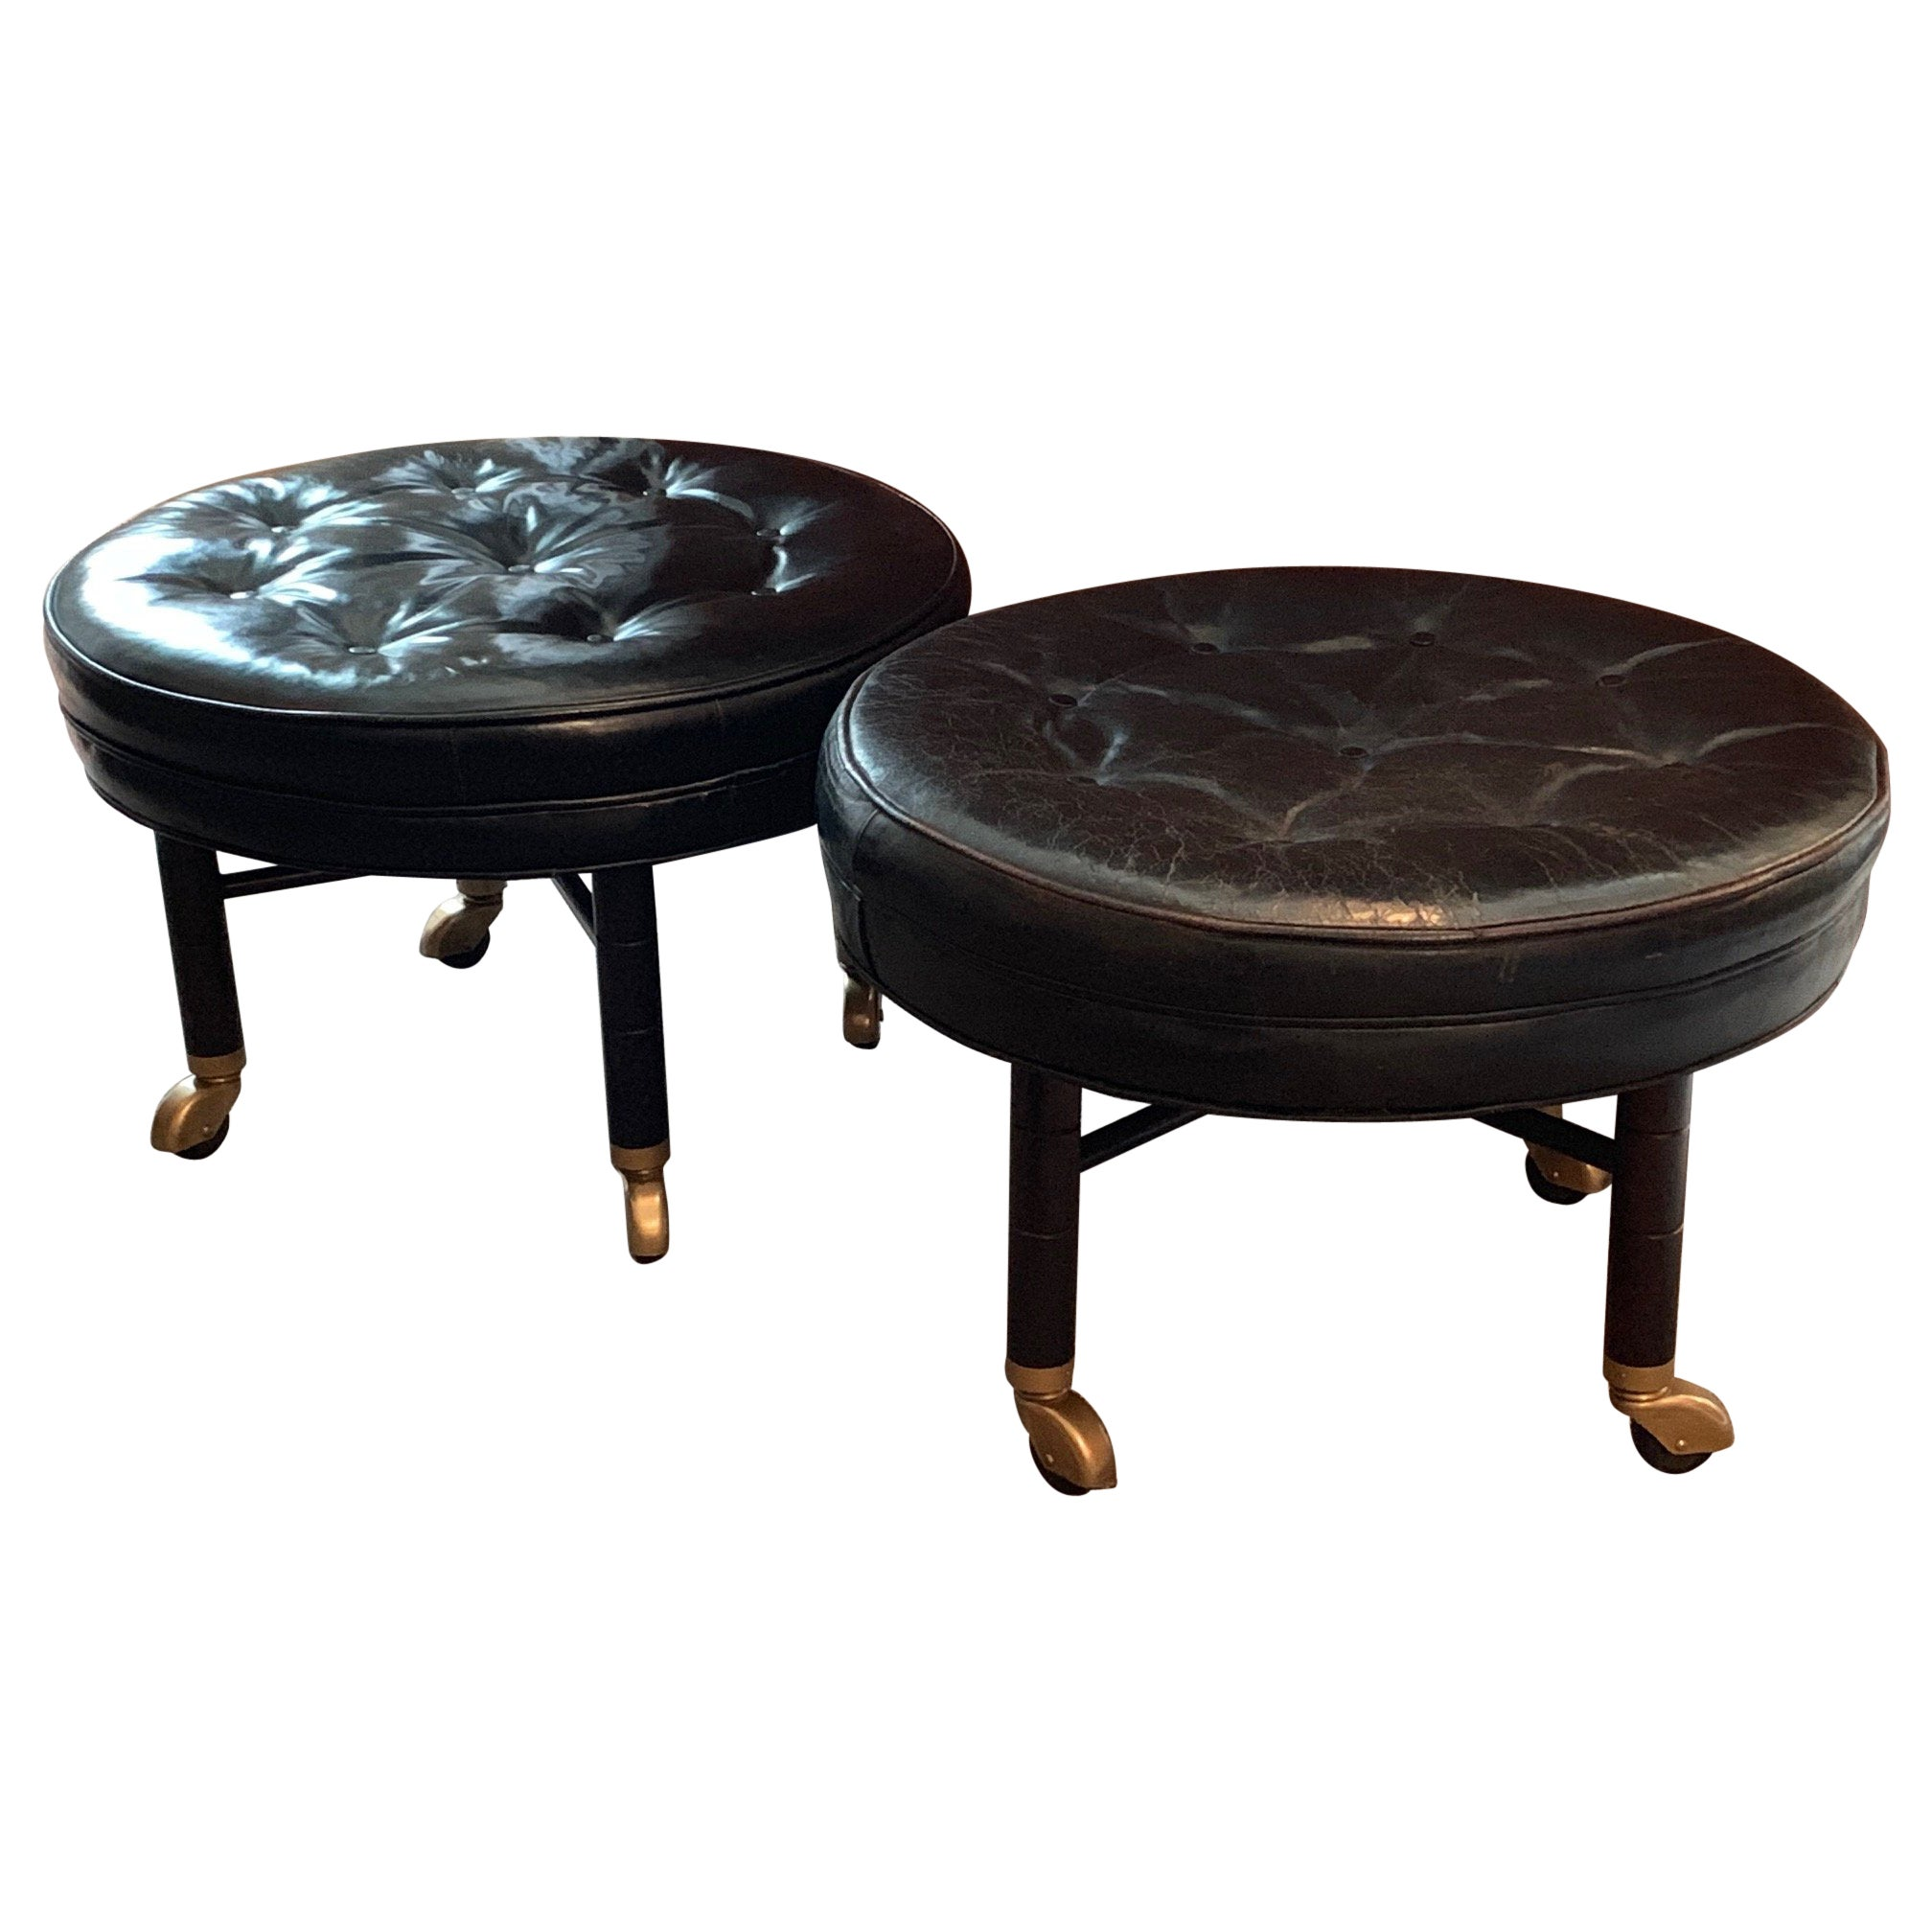 A Pair of Large Round Leather Ottomans by Baker